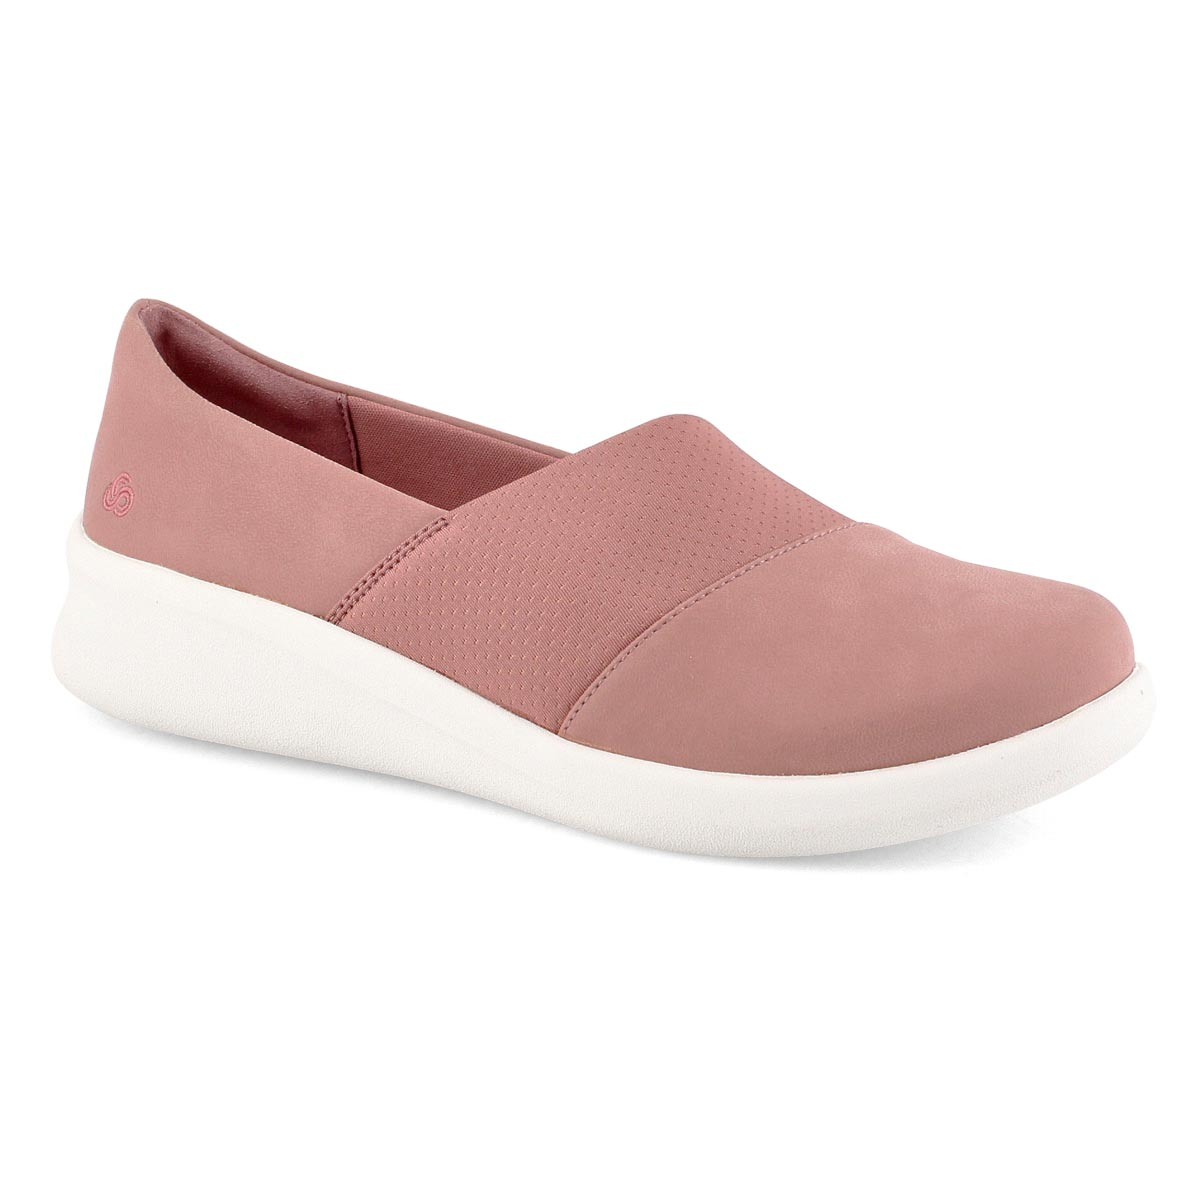 Lds Sillian 2.0 Moon mauve casual loafer